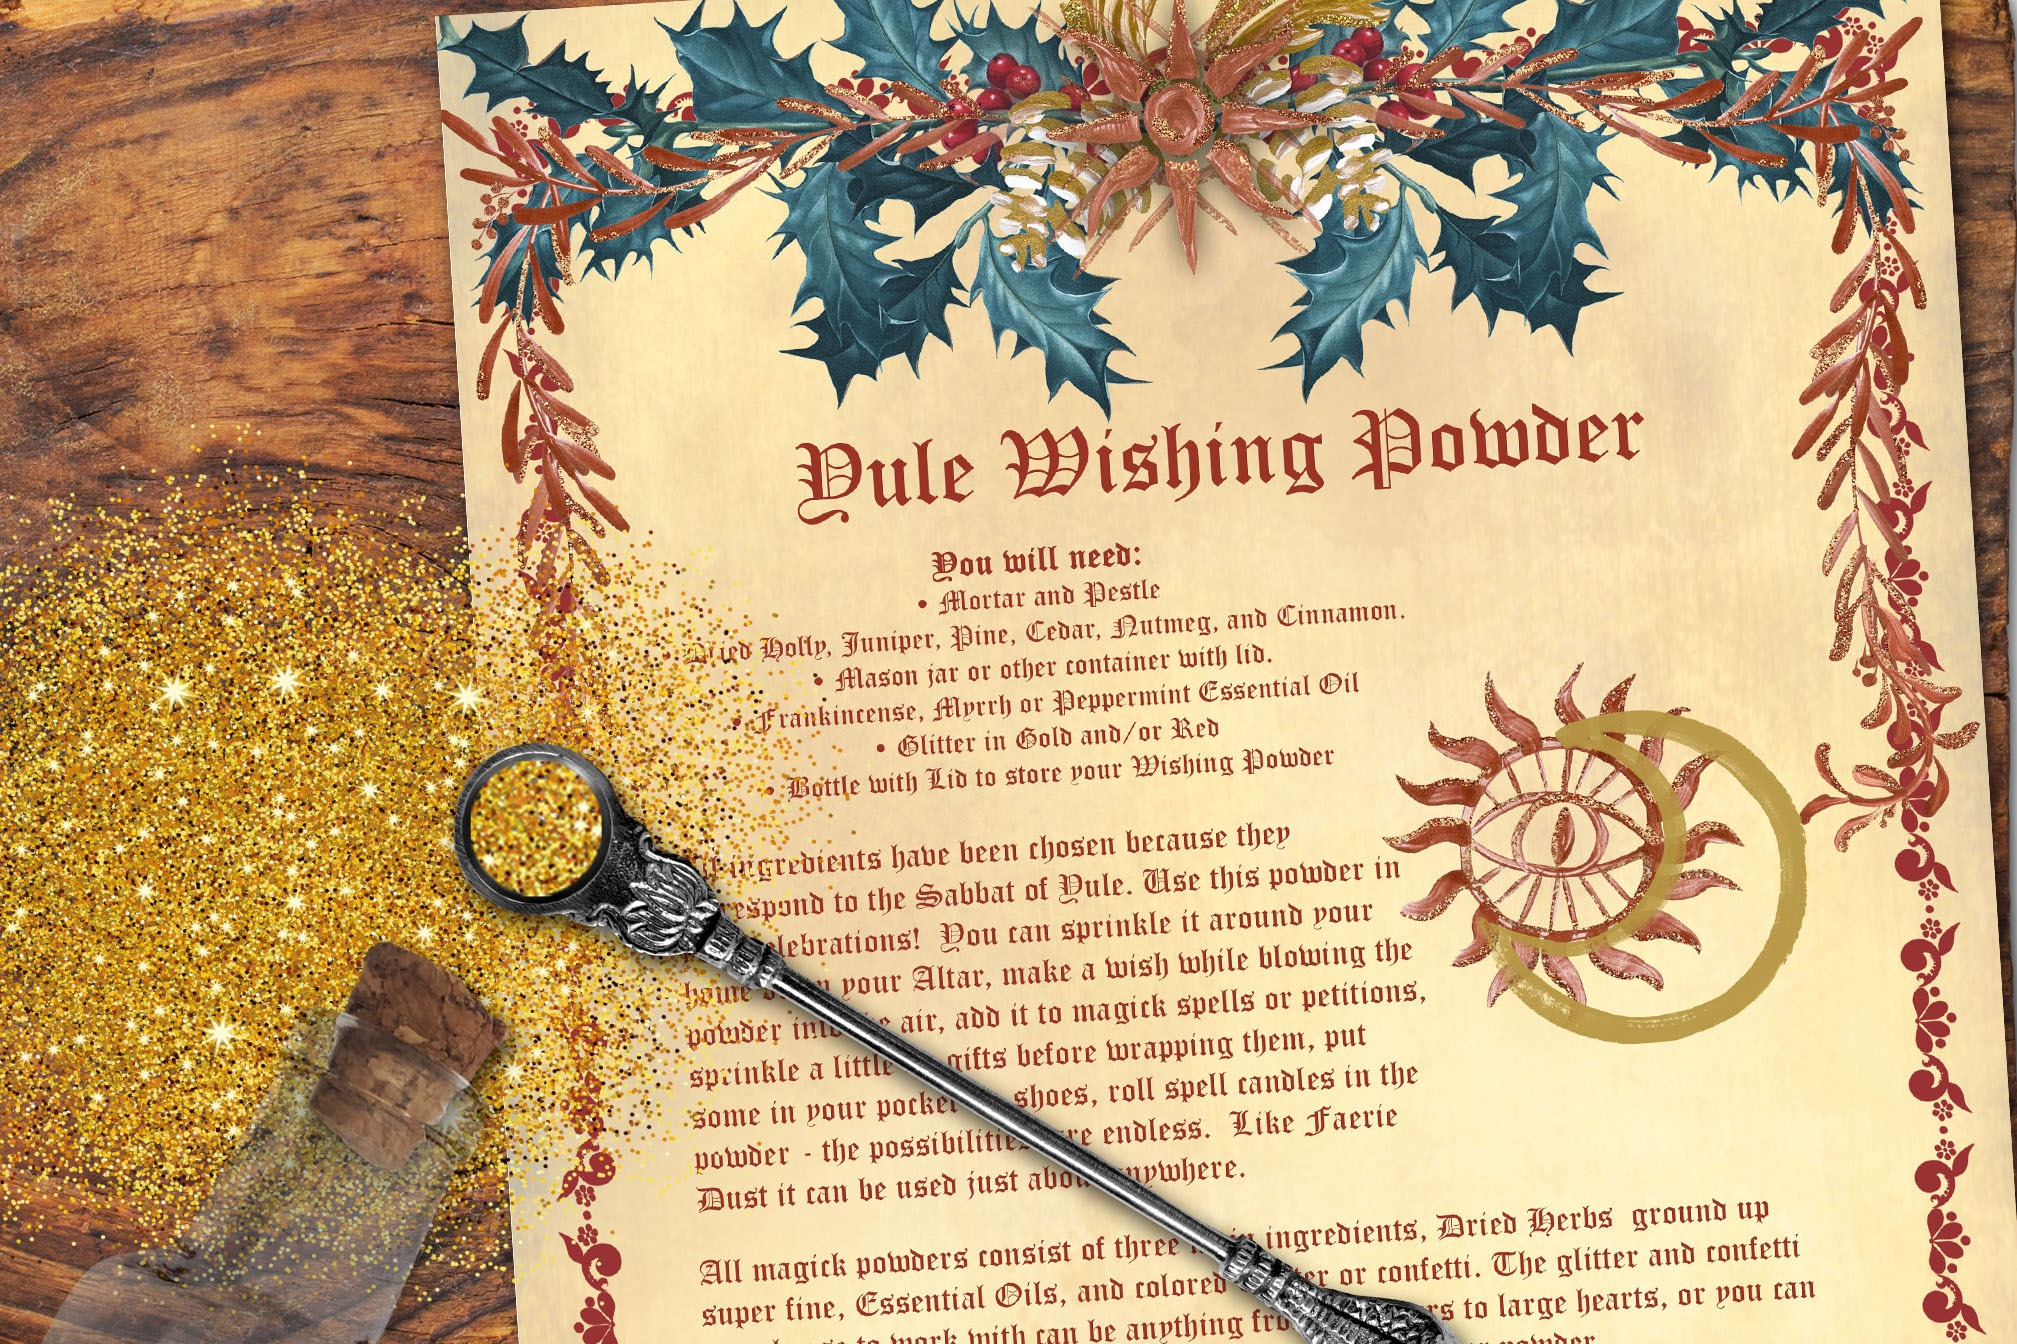 YULE WISHING POWDER - Recipe and ideas on how to use it.